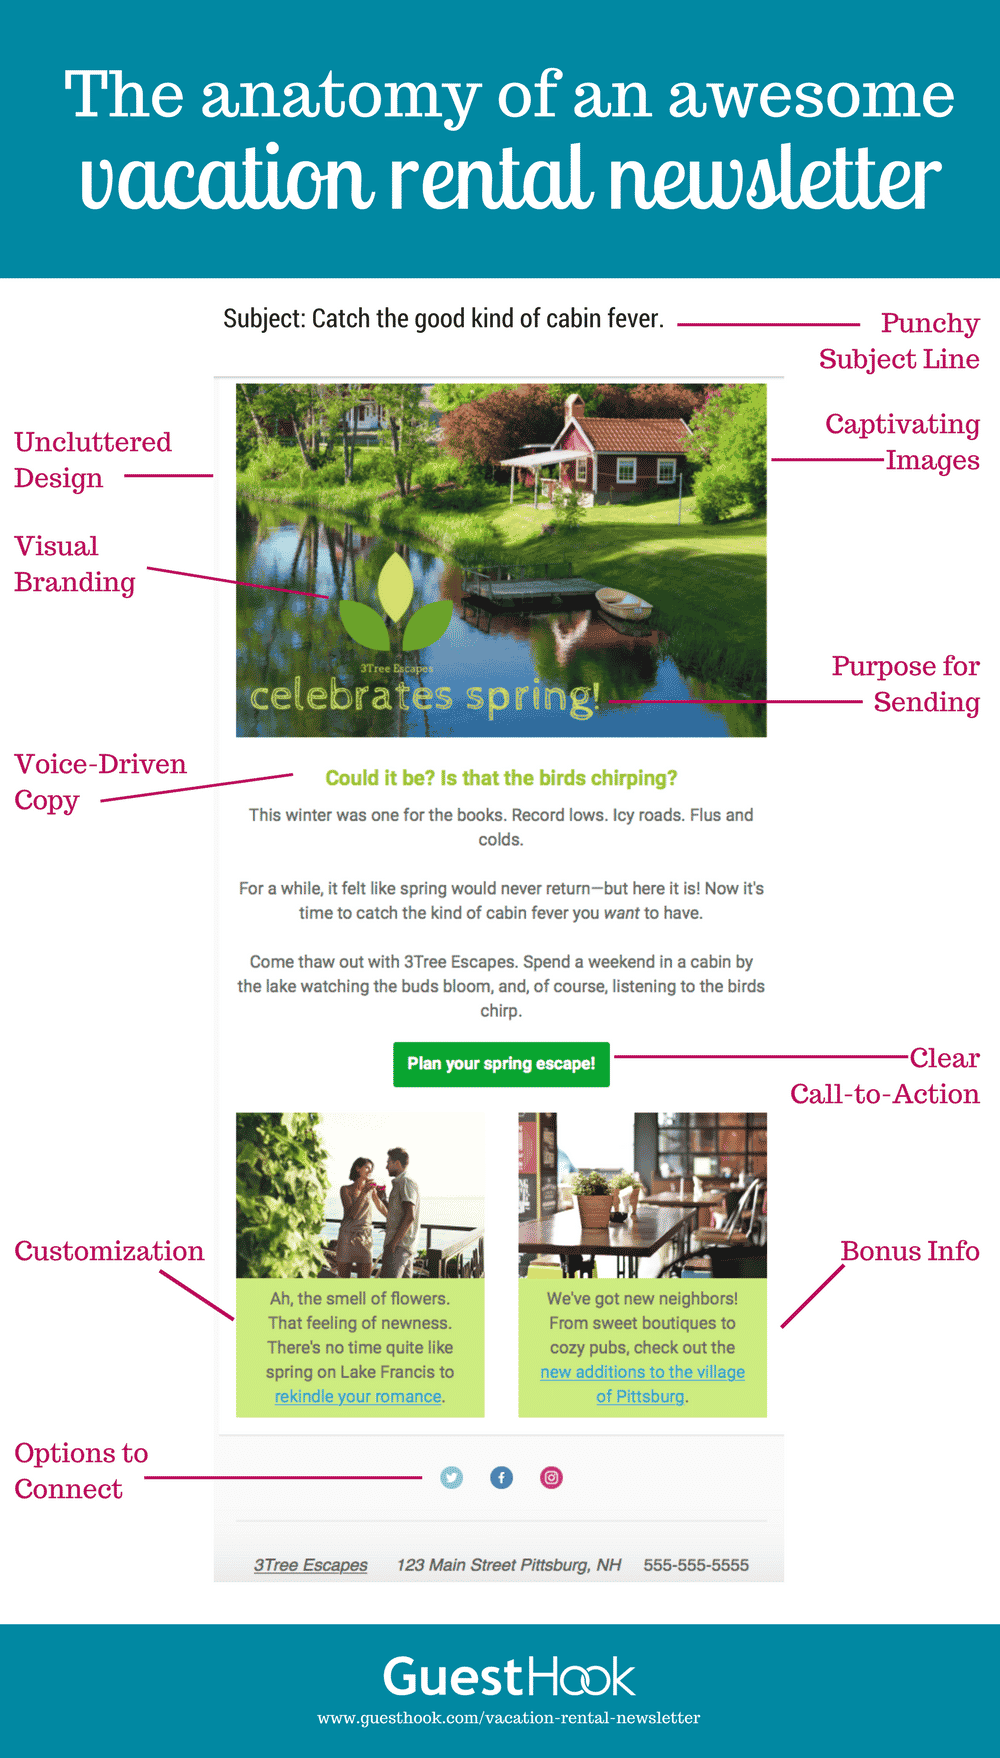 Anatomy of Awesome Vacation Rental Newsletter